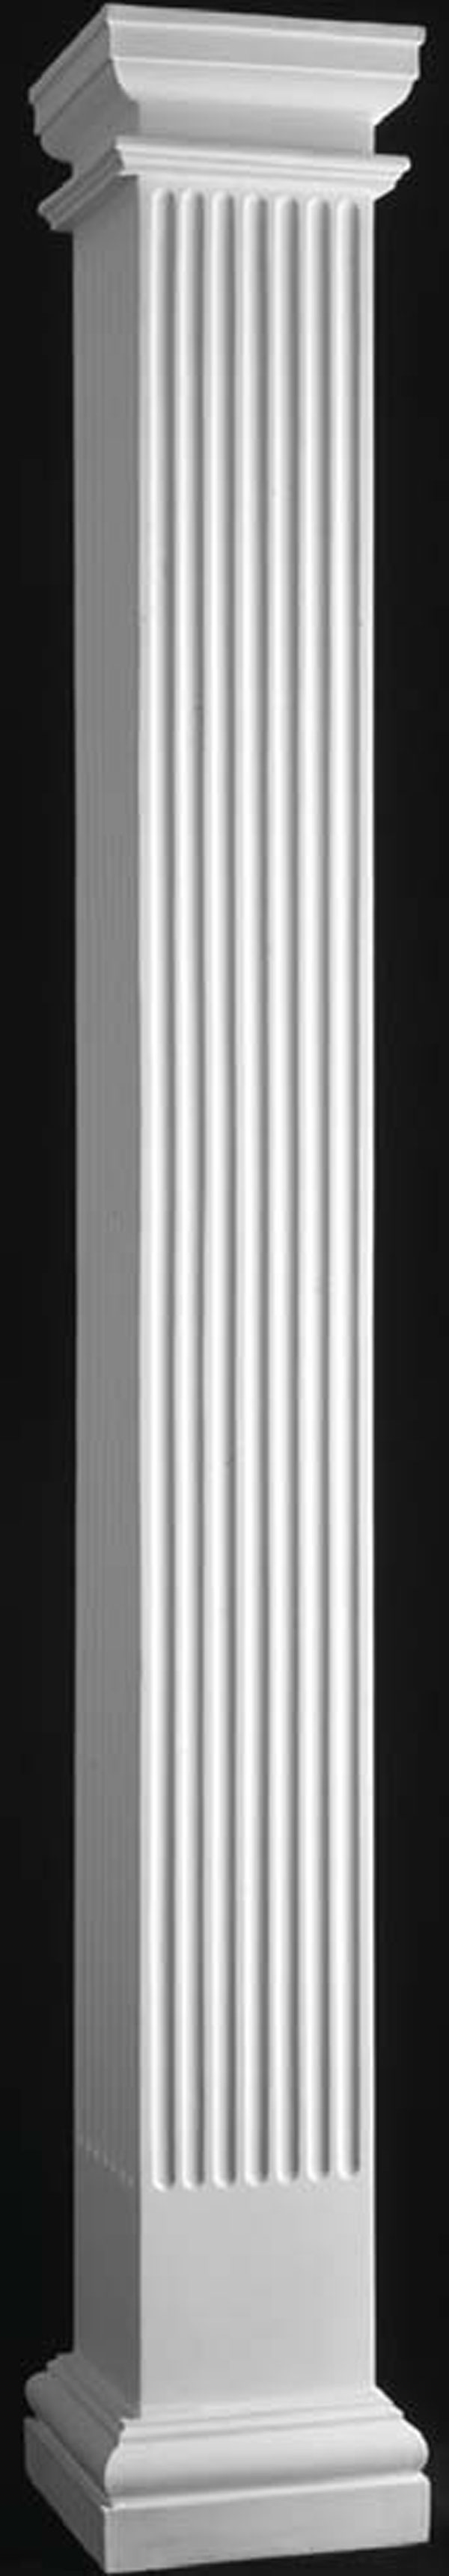 Chadsworth Columns Photo Gallery for Square Pillar Designs Pictures  157uhy